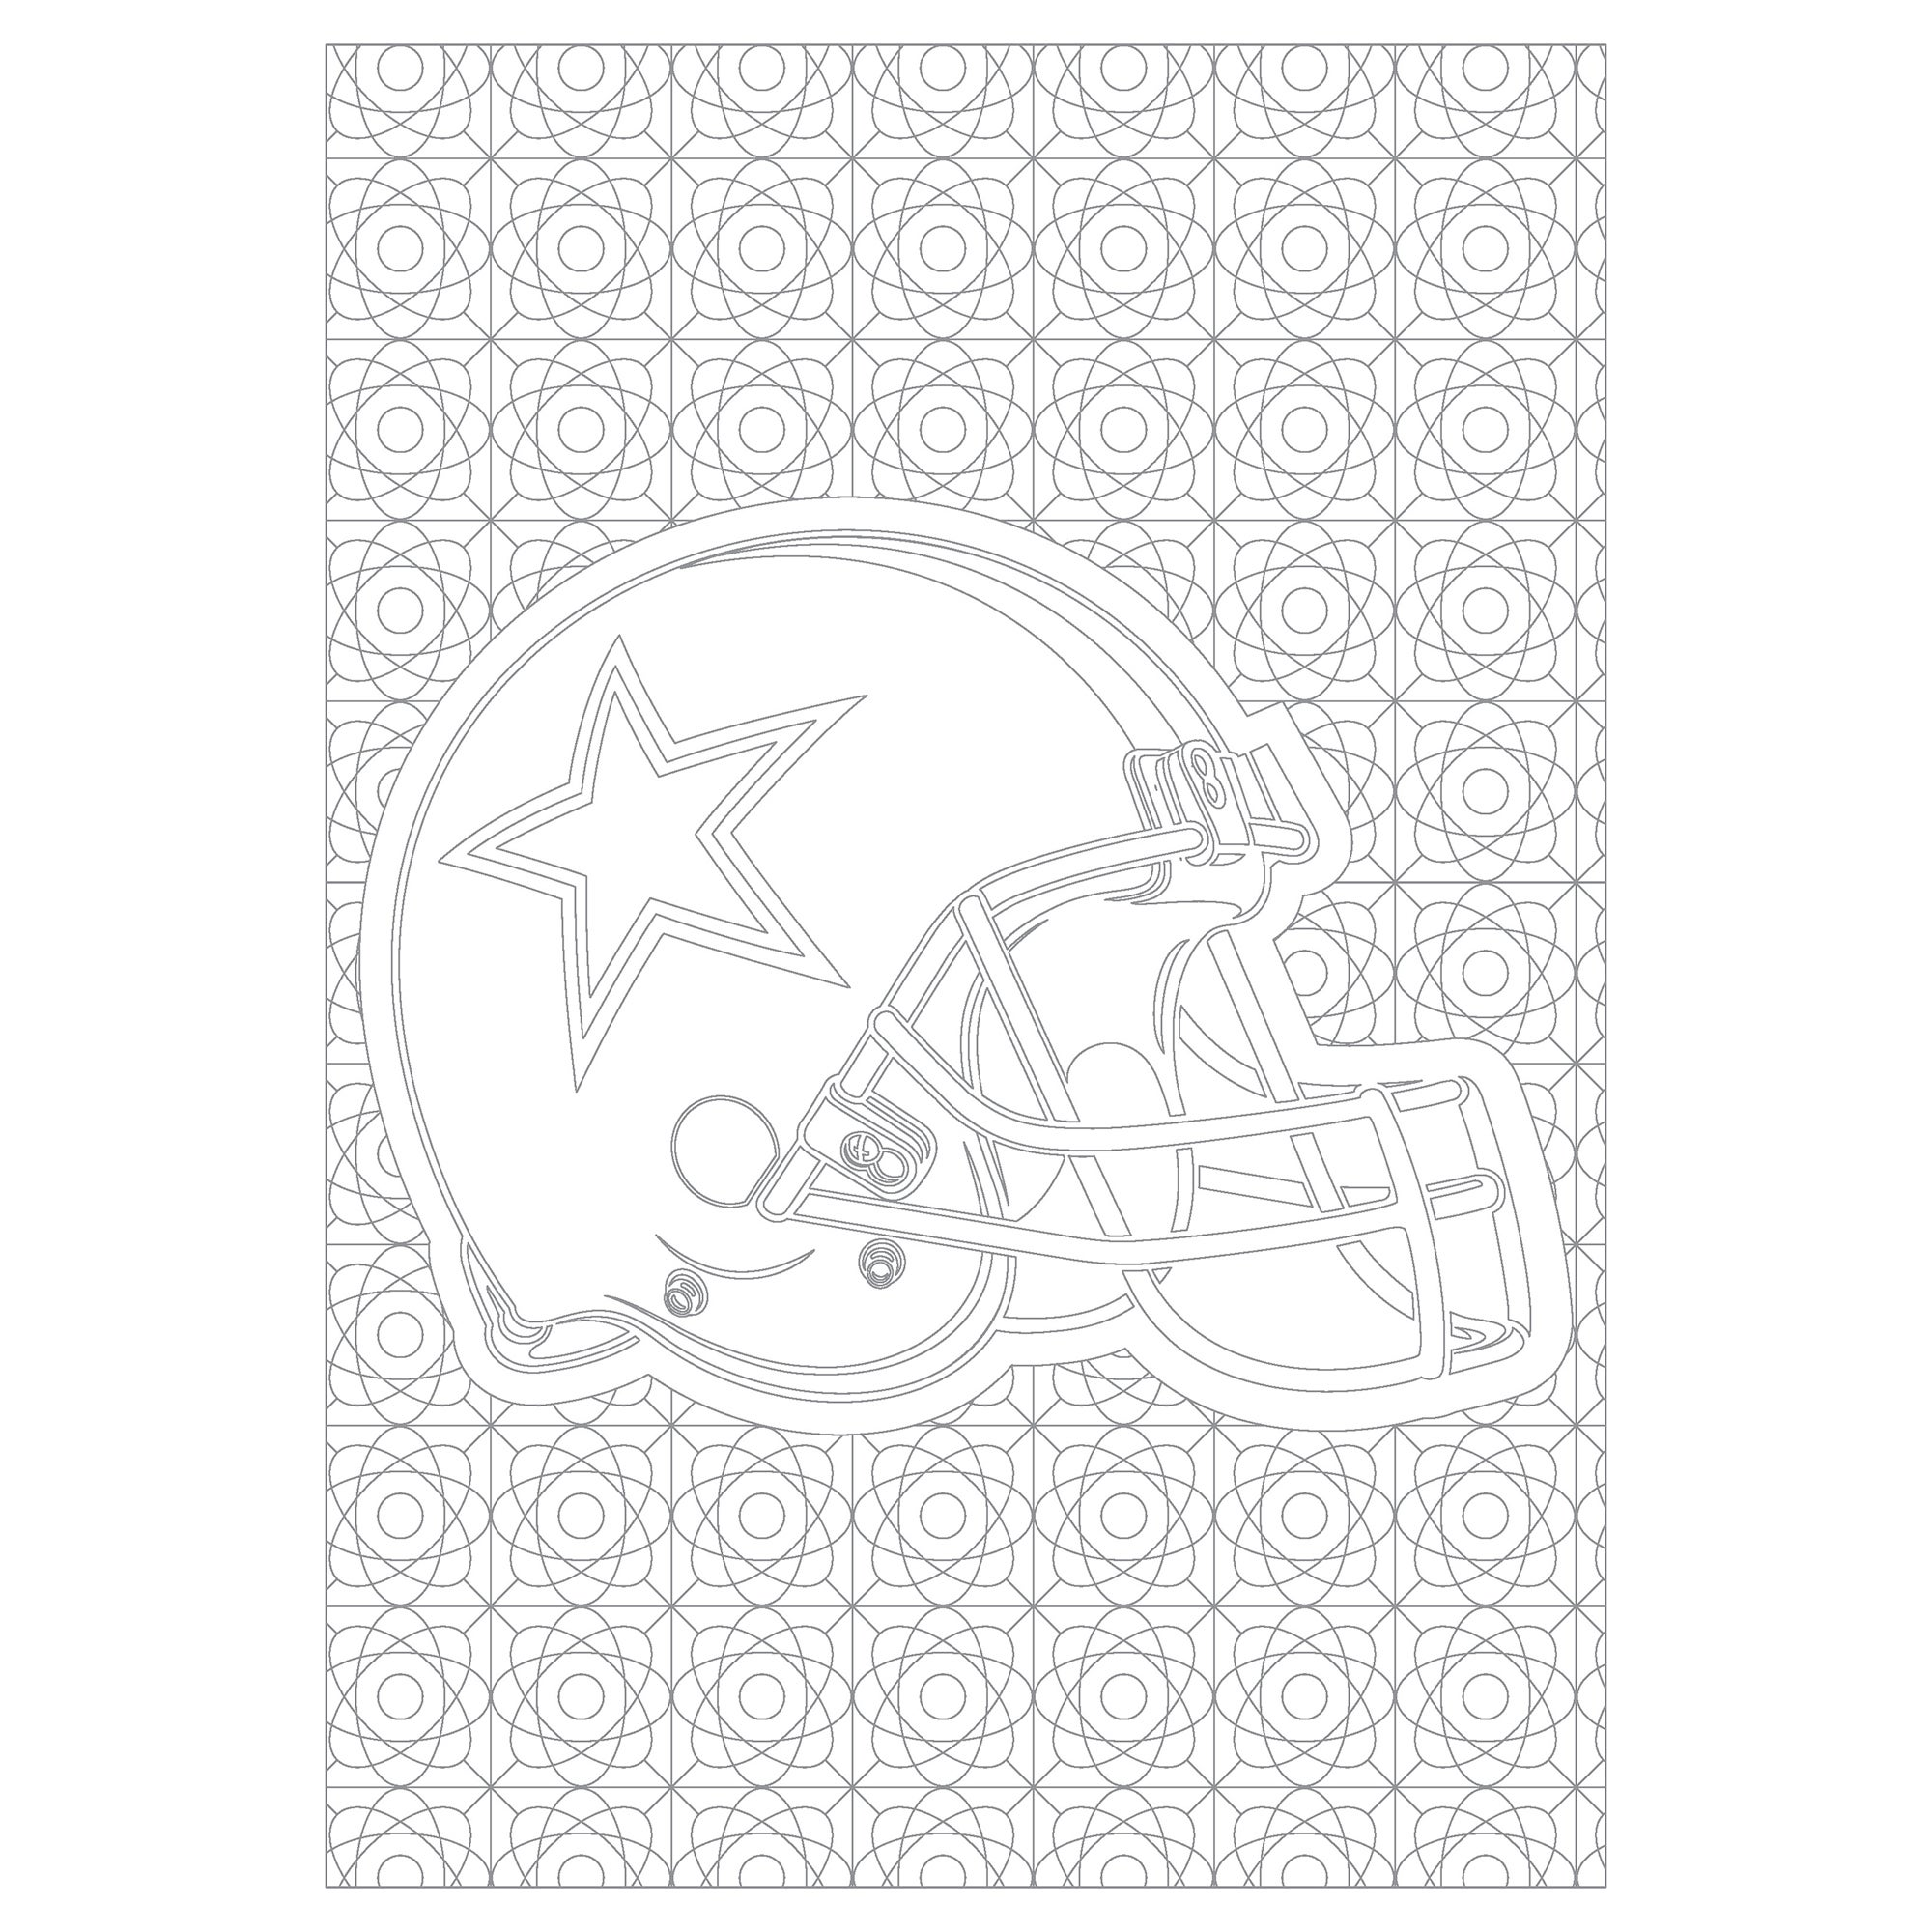 Dallas Cowboys Nfl Adult Coloring Book Overstock 18012027